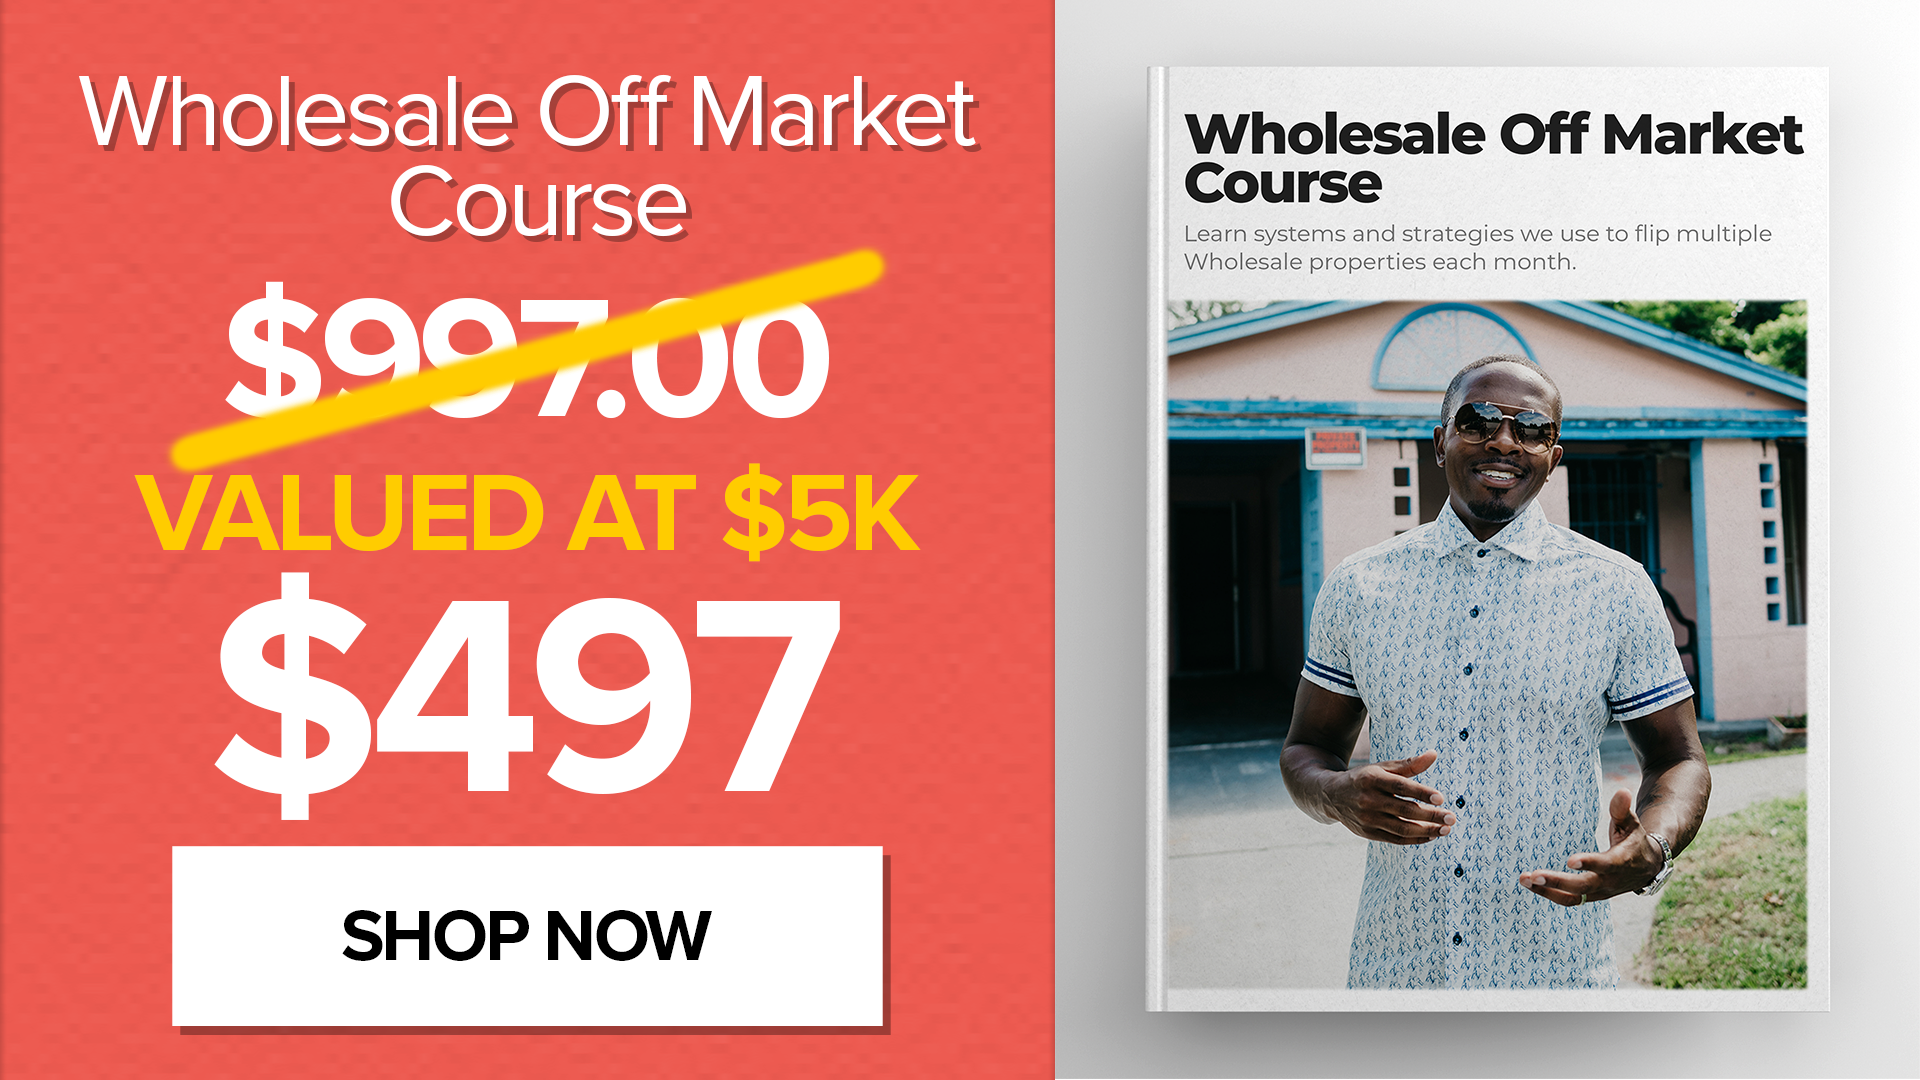 Wholesale Off Market Course_NP_V1 (1)